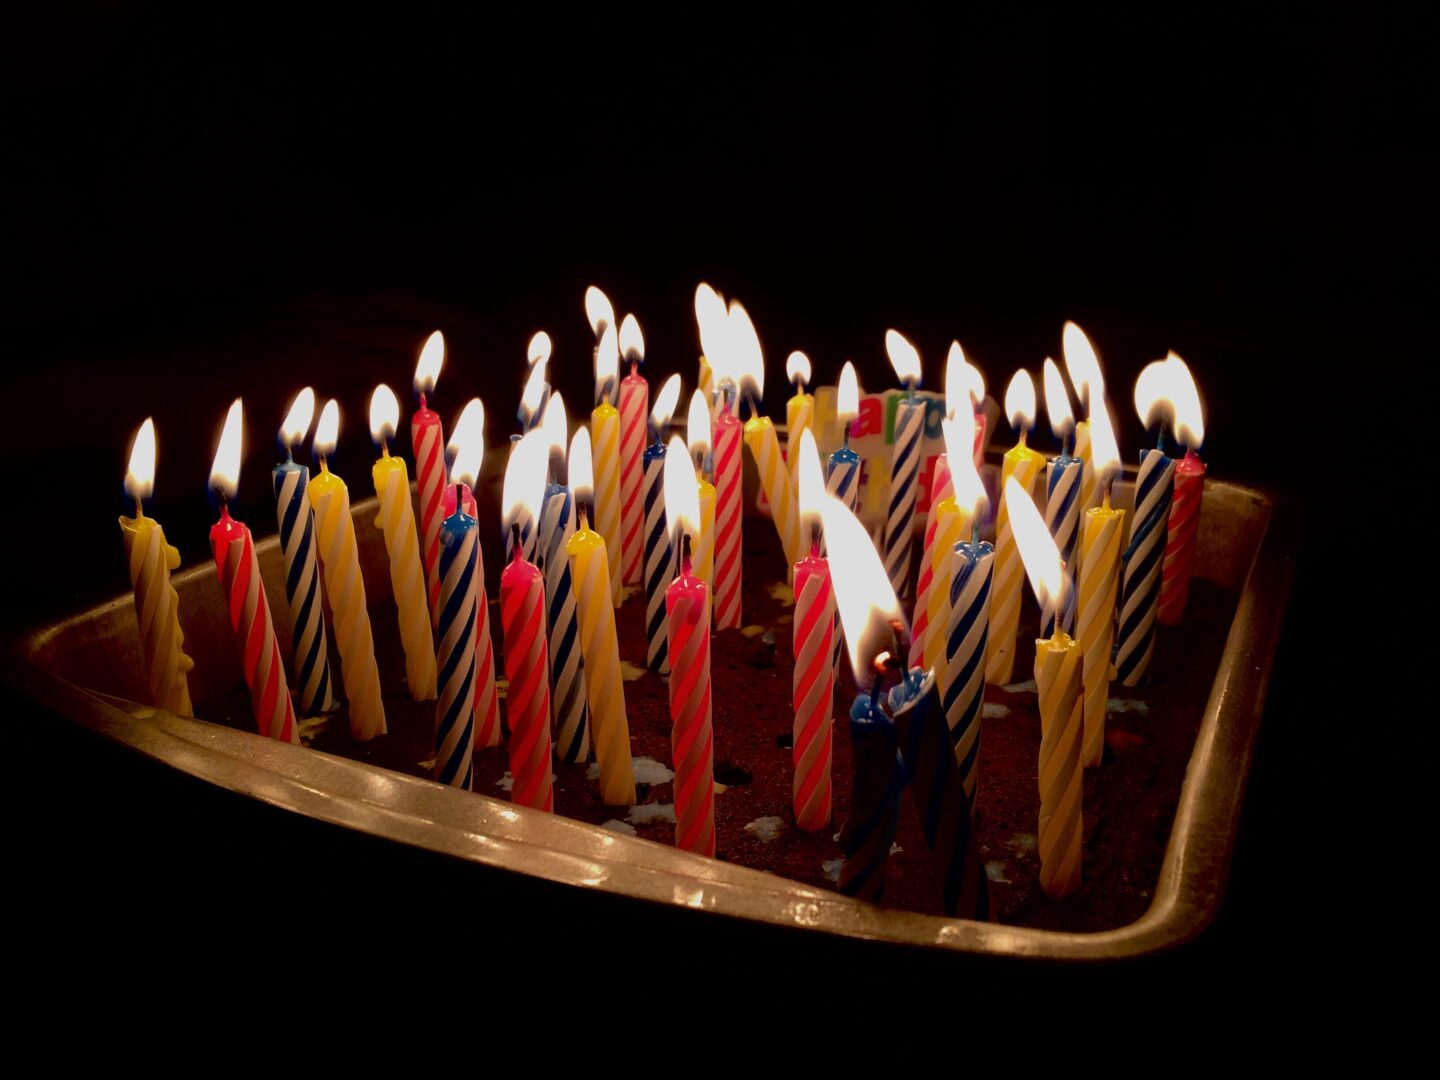 Best gift ideas for 22nd birthday for him with cake and birthday candles